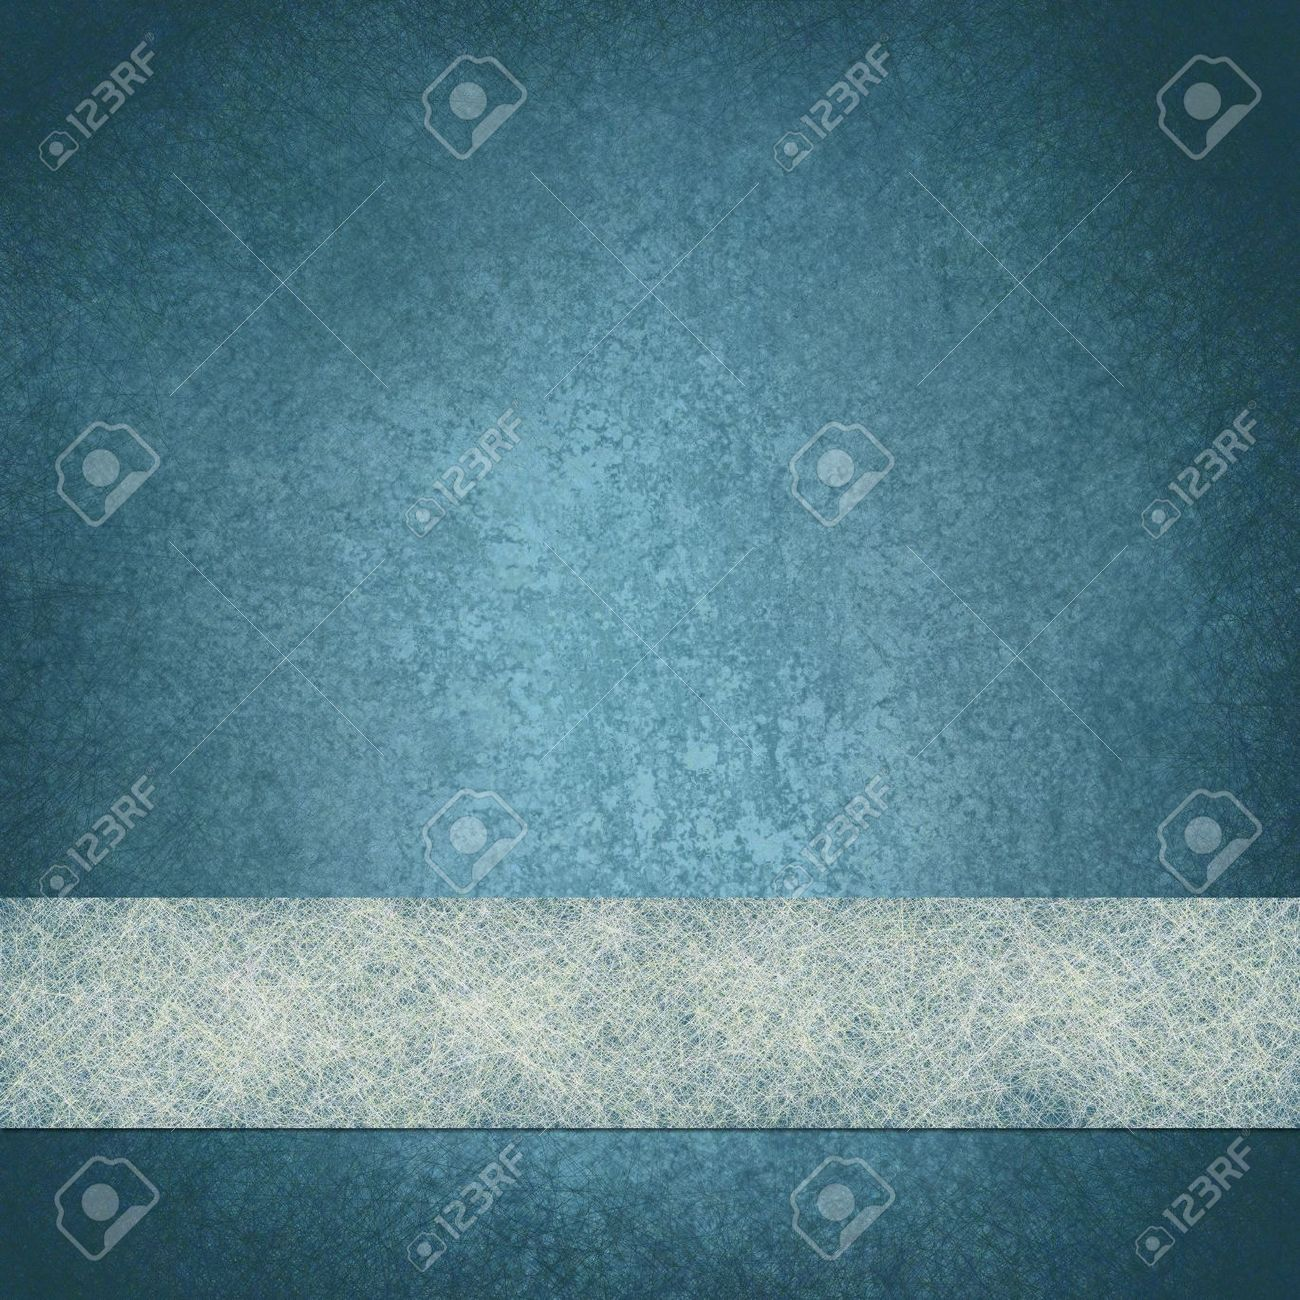 elegant formal background with frosty white parchment ribbon design layout Stock Photo - 11230950